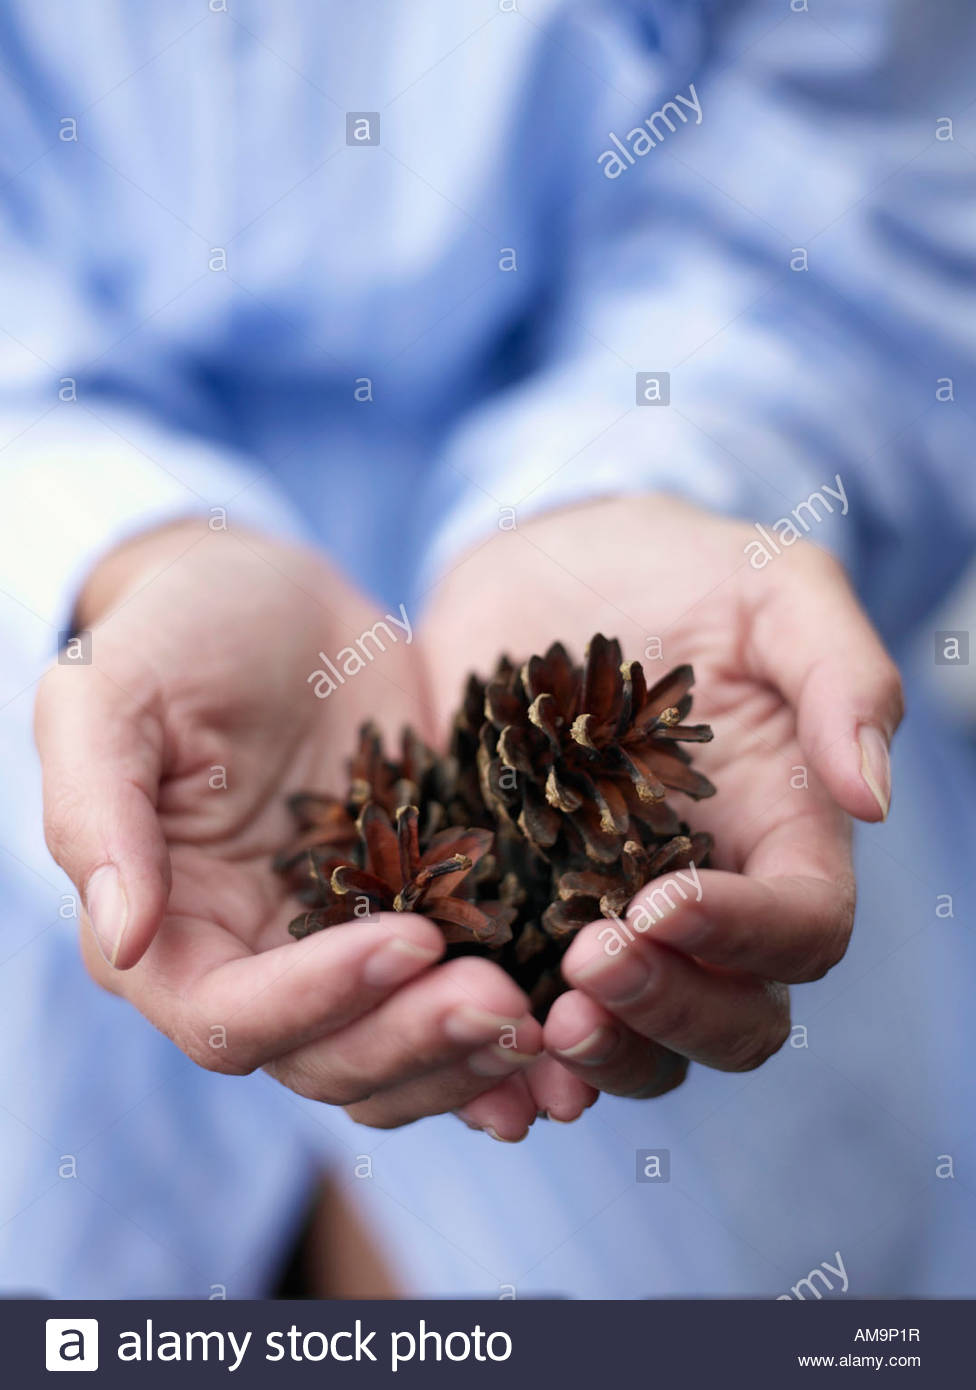 Woman's hands holding pine cones. - Stock Image